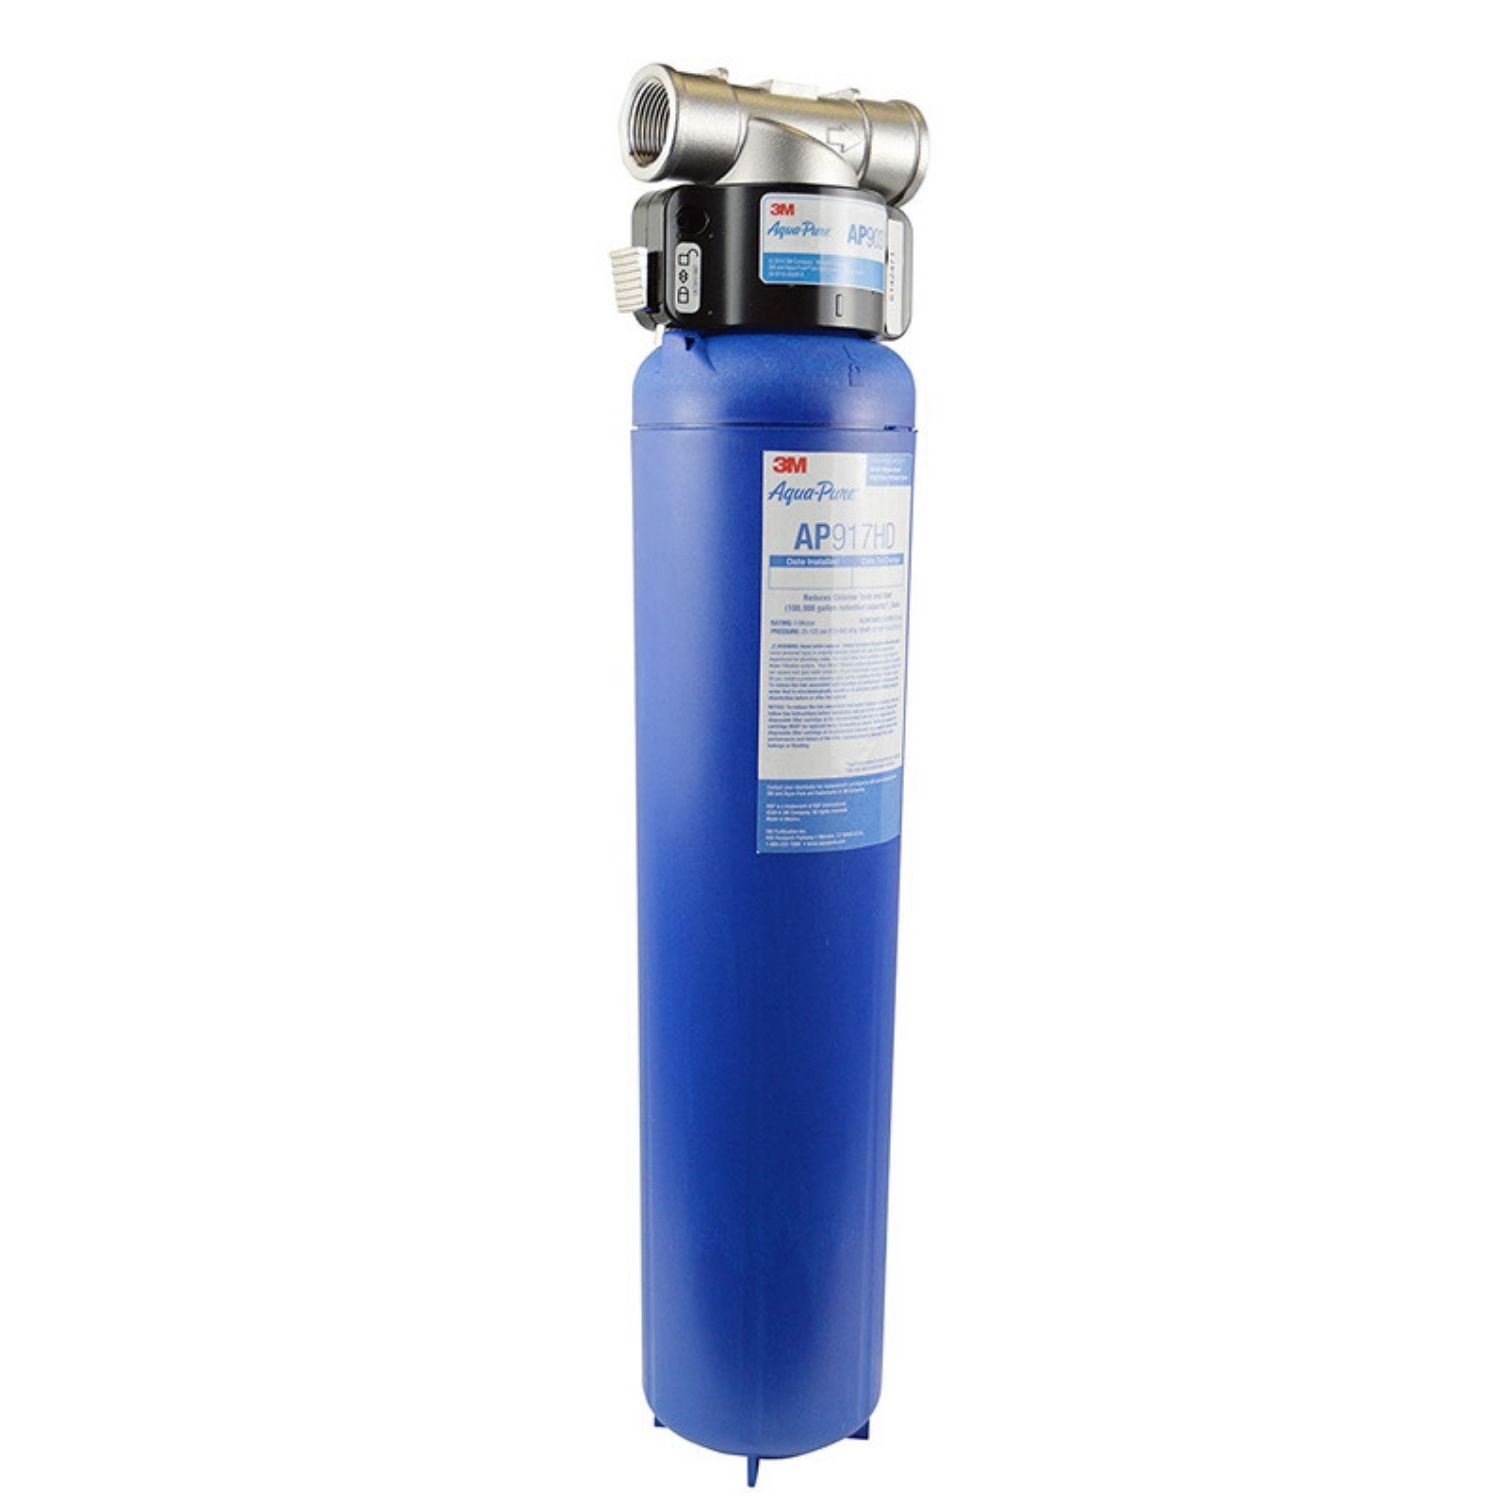 3M Aqua-Pure Whole House Sanitary Water Filter System